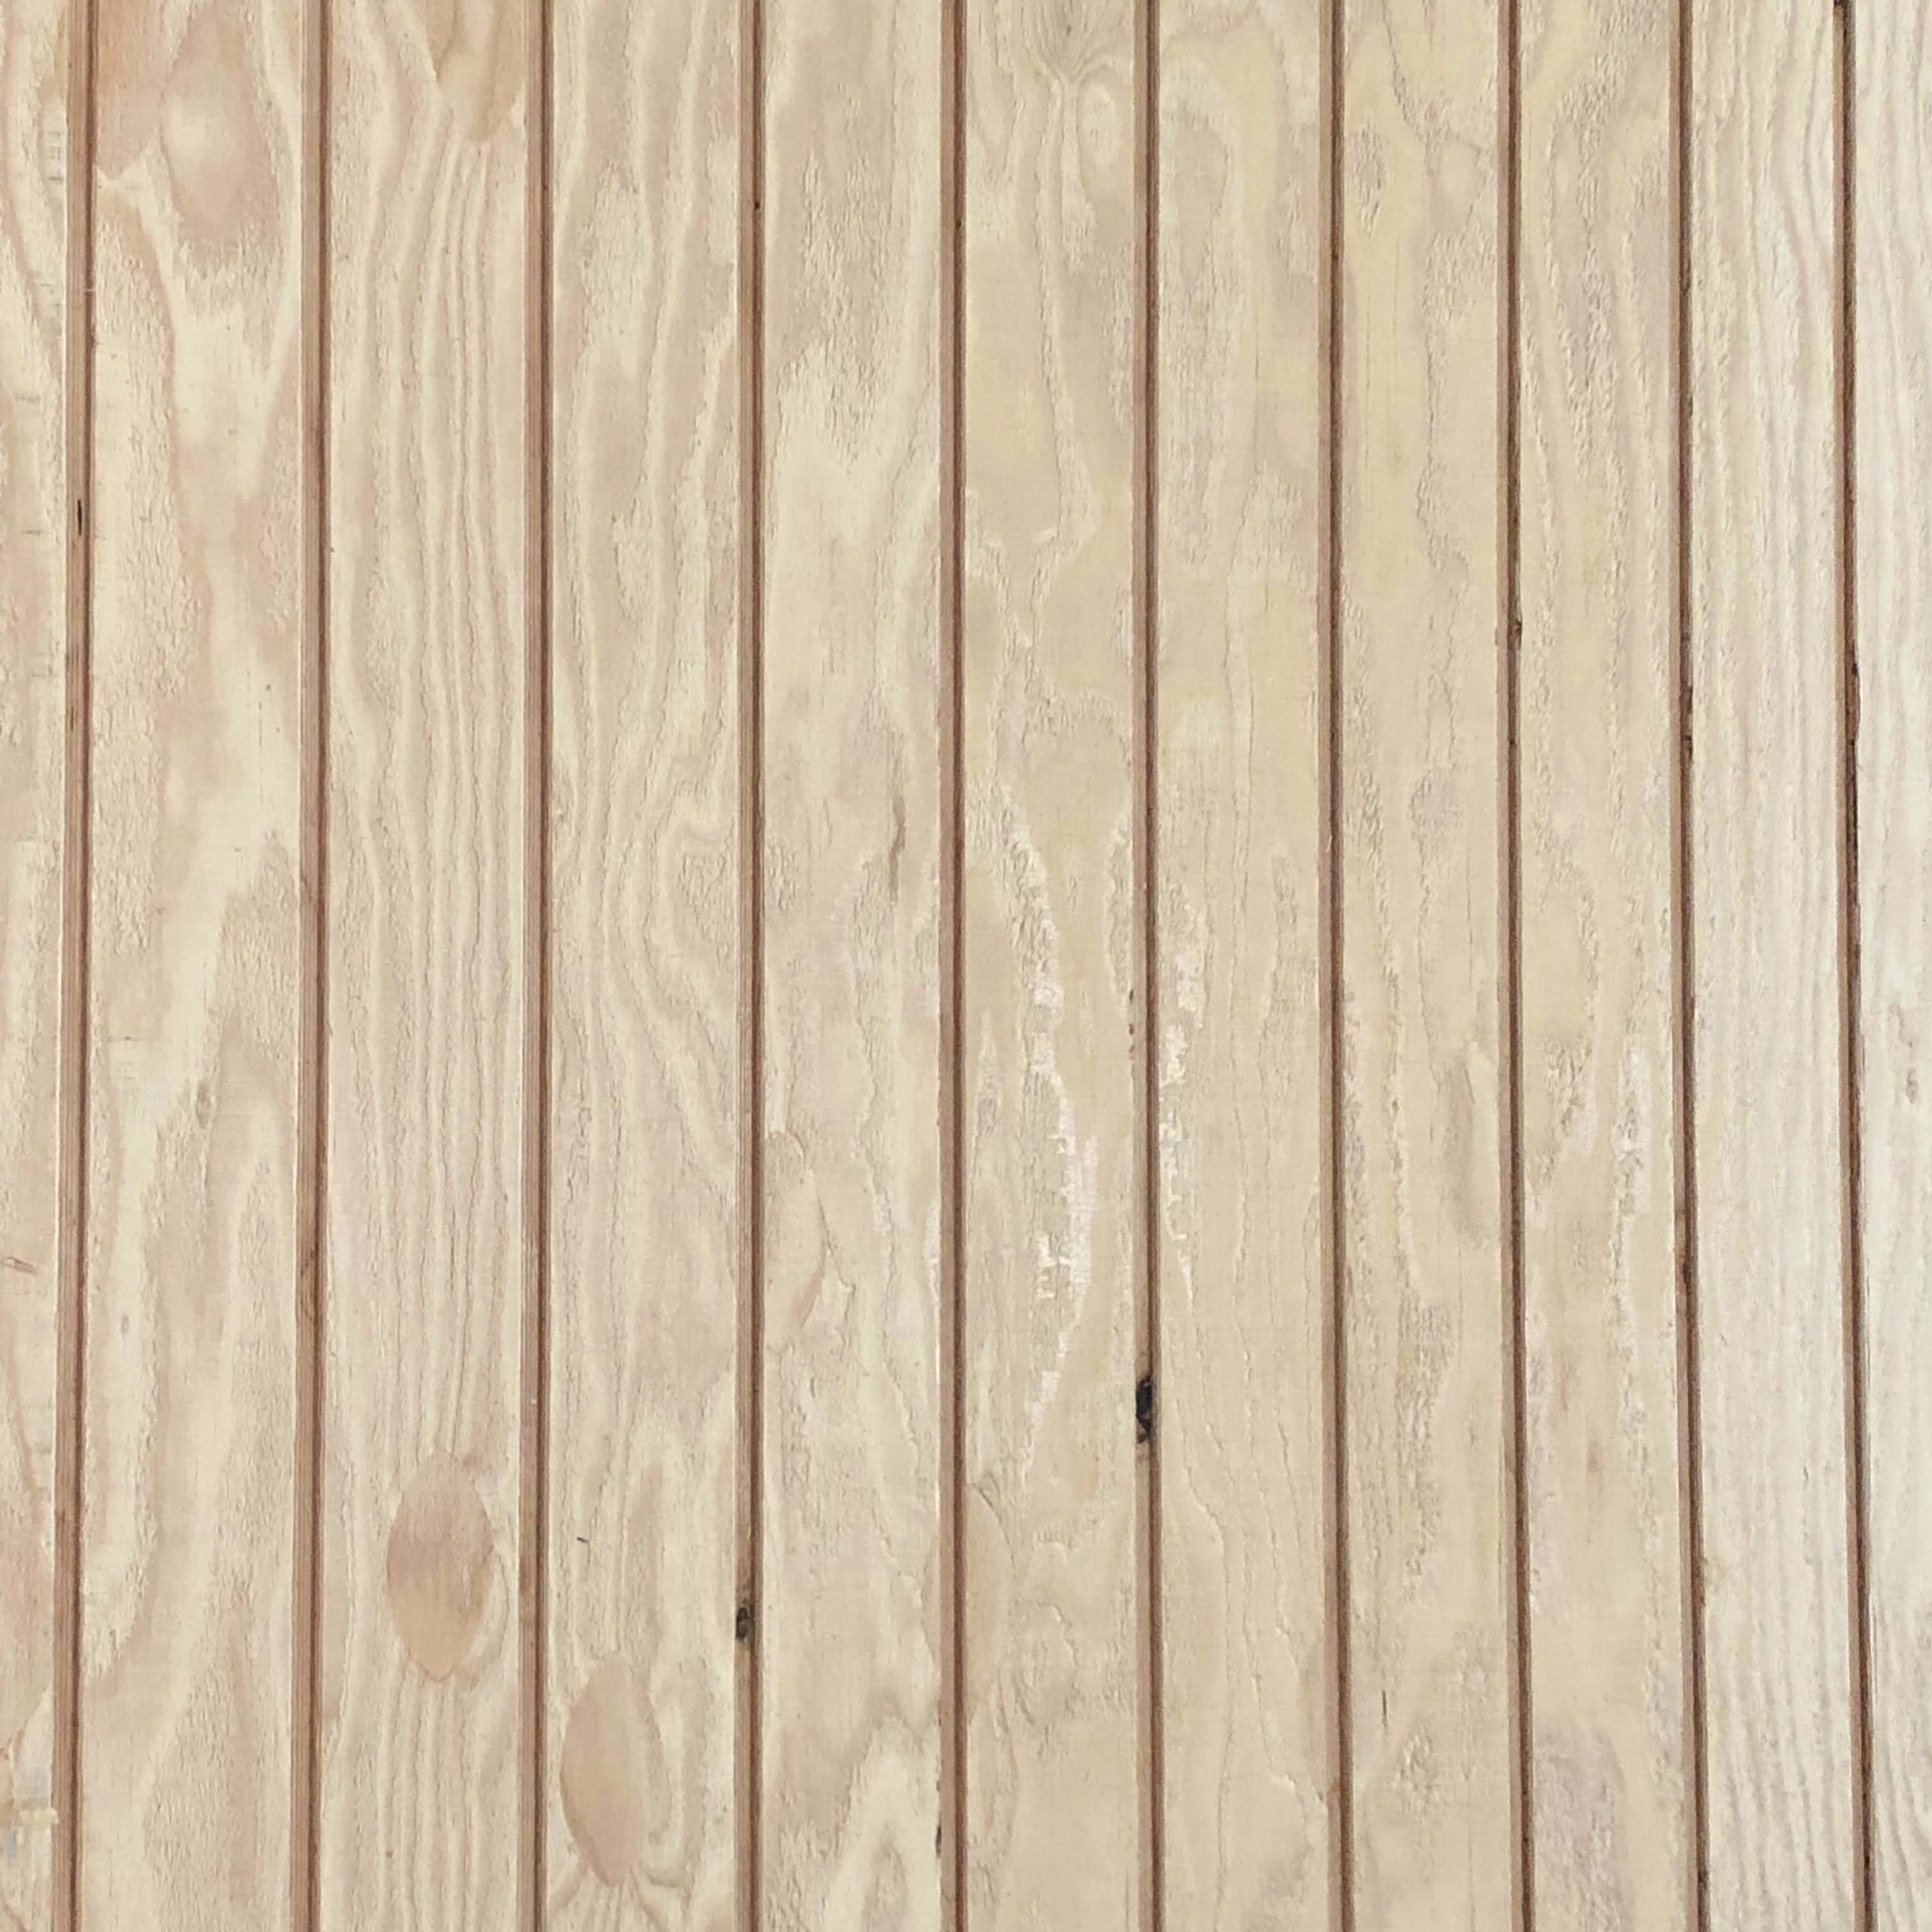 T1 11 Exterior Siding Panel With 4 Oc